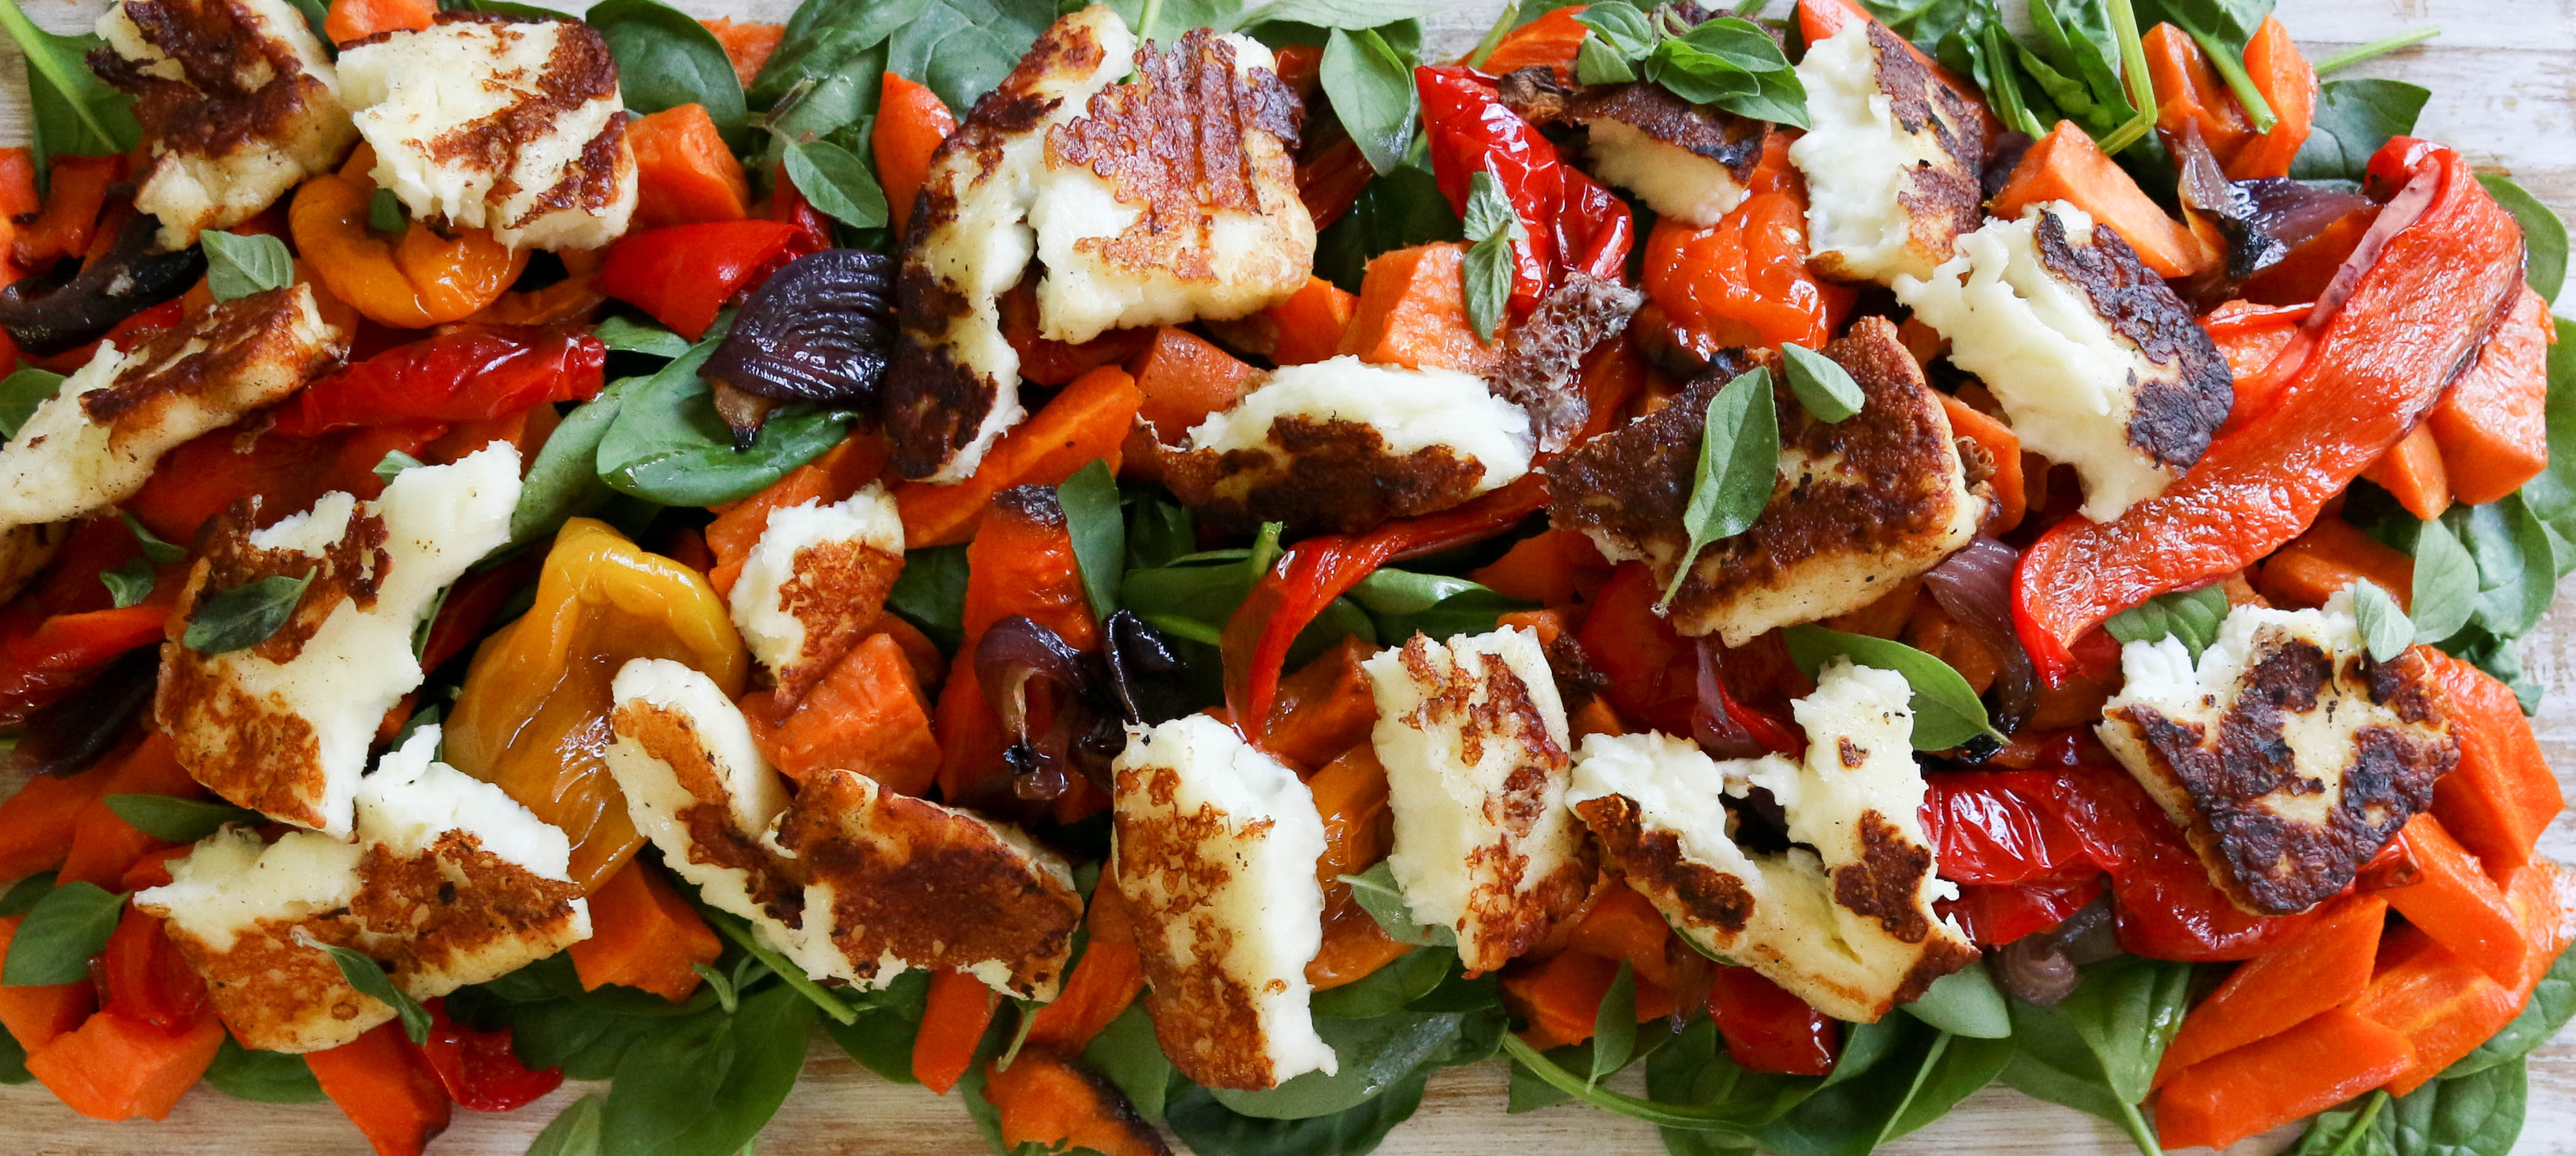 Roast veg and halloumi salad